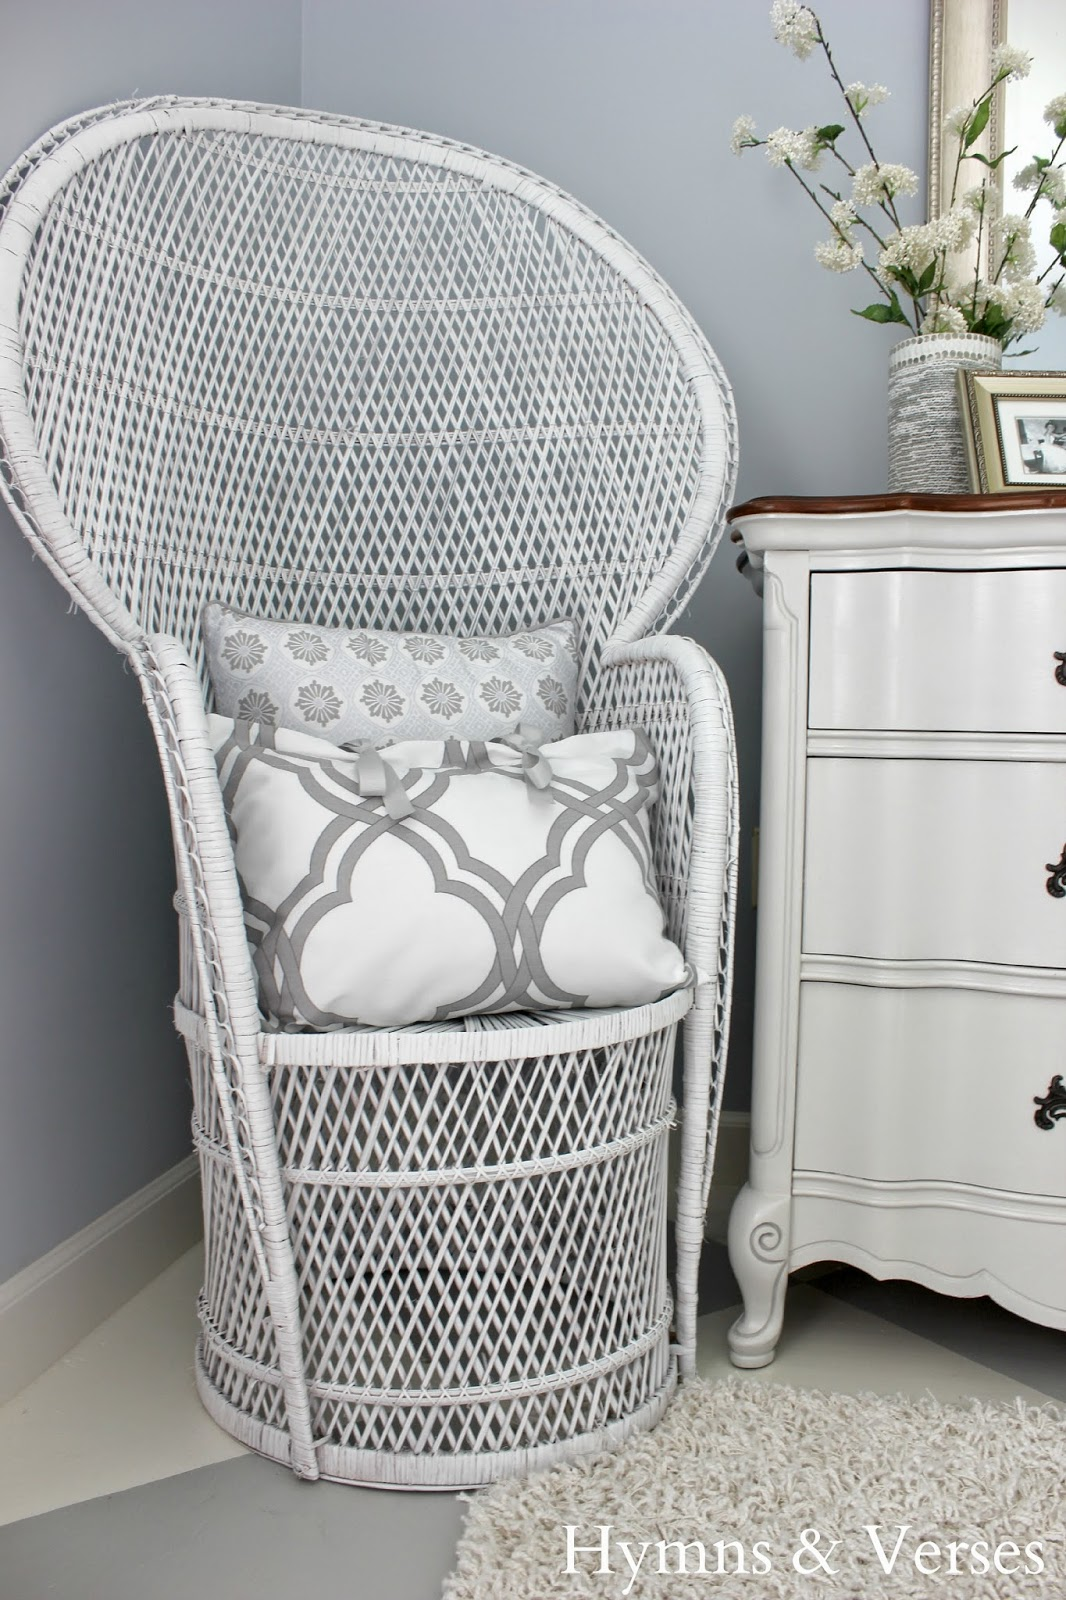 rattan peacock chair maestro pedicure spa hymns and verses finally finished the master bedroom